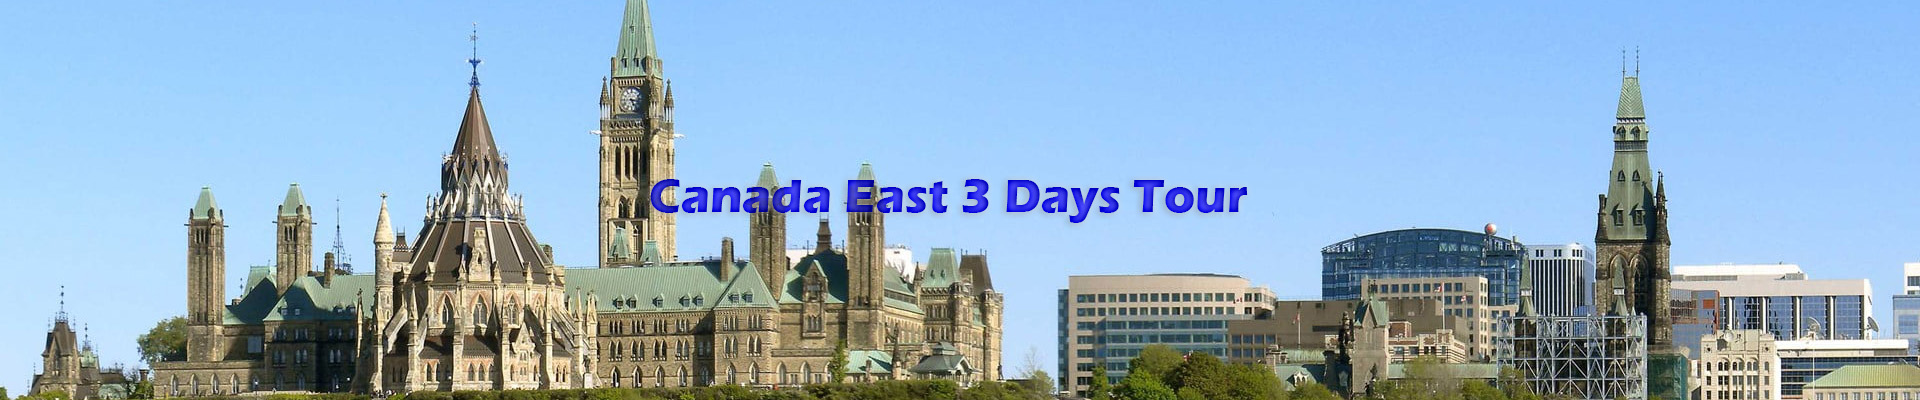 Canada East 3 Days Tour